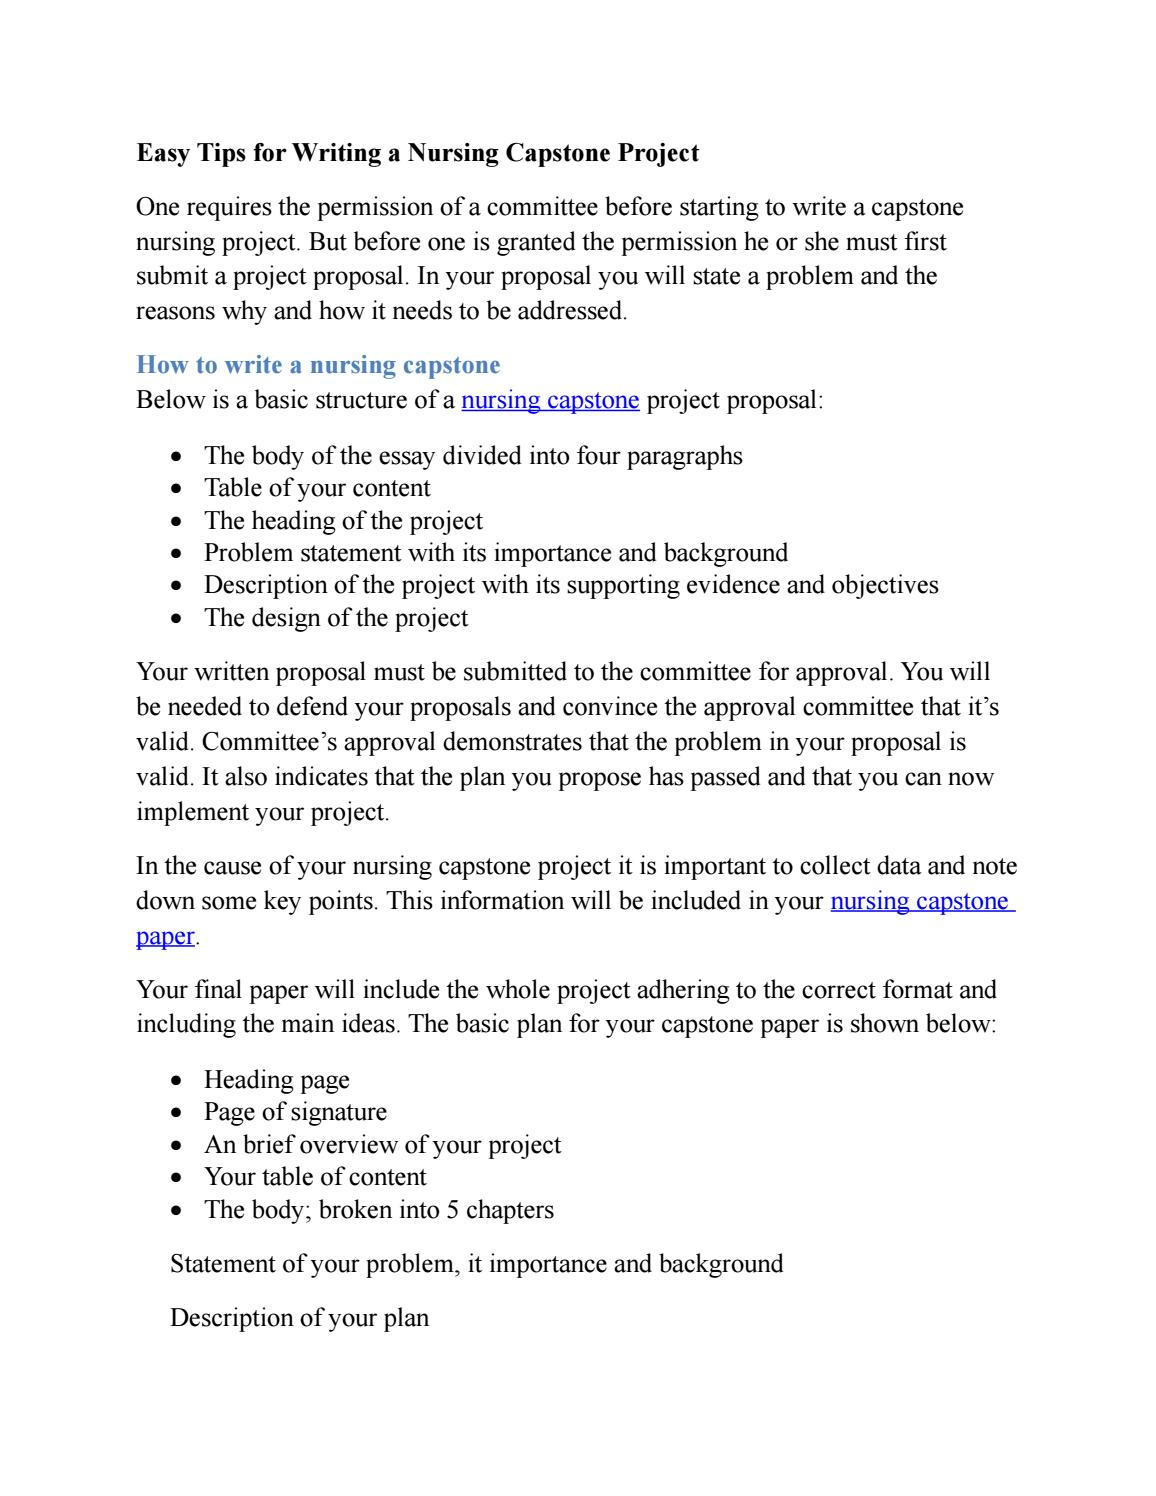 importance of writing a project proposal